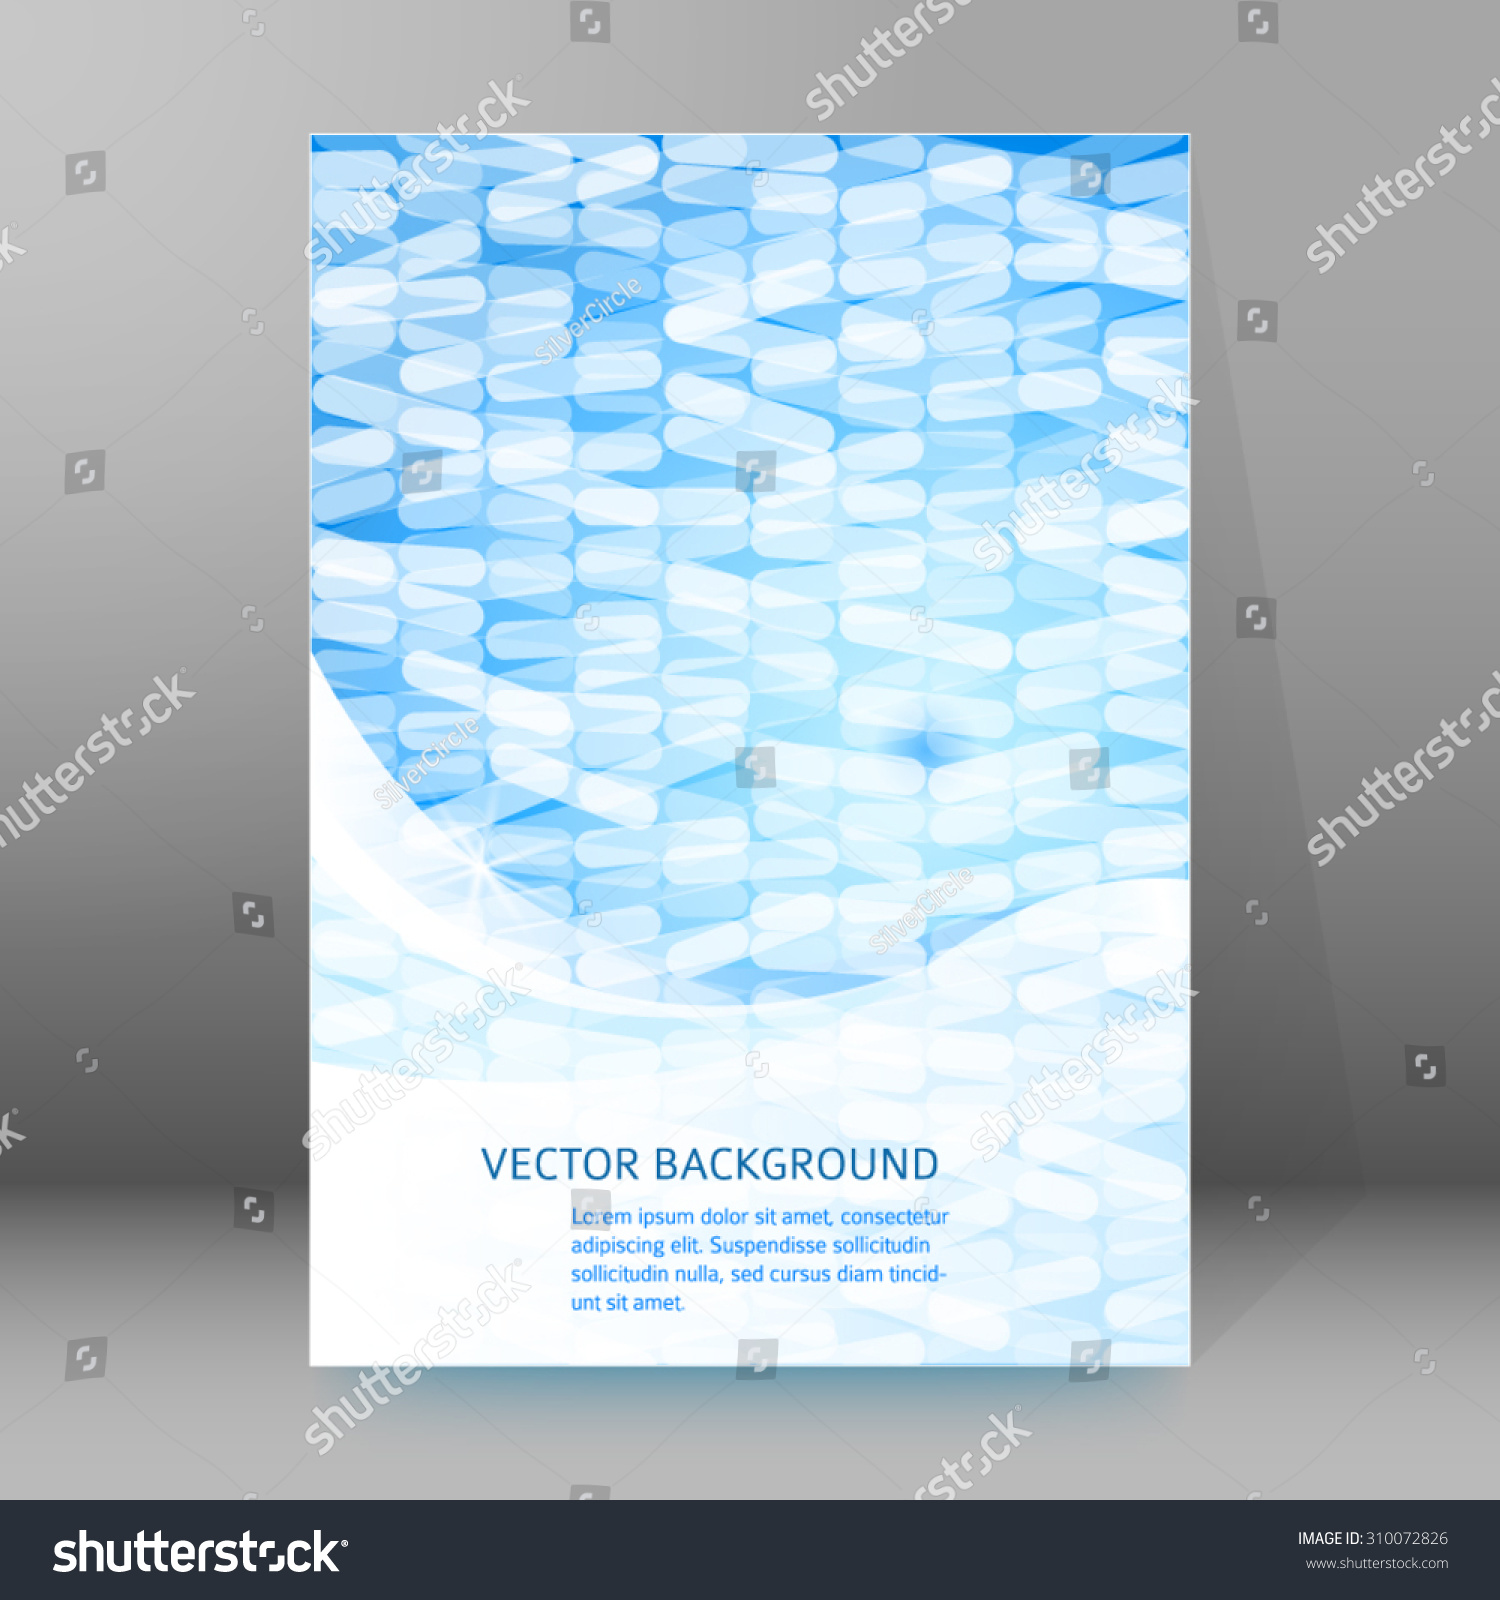 design flyer label medical product vector stock vector  design flyer label medical product vector illustration eps 10 for infographics presentation template